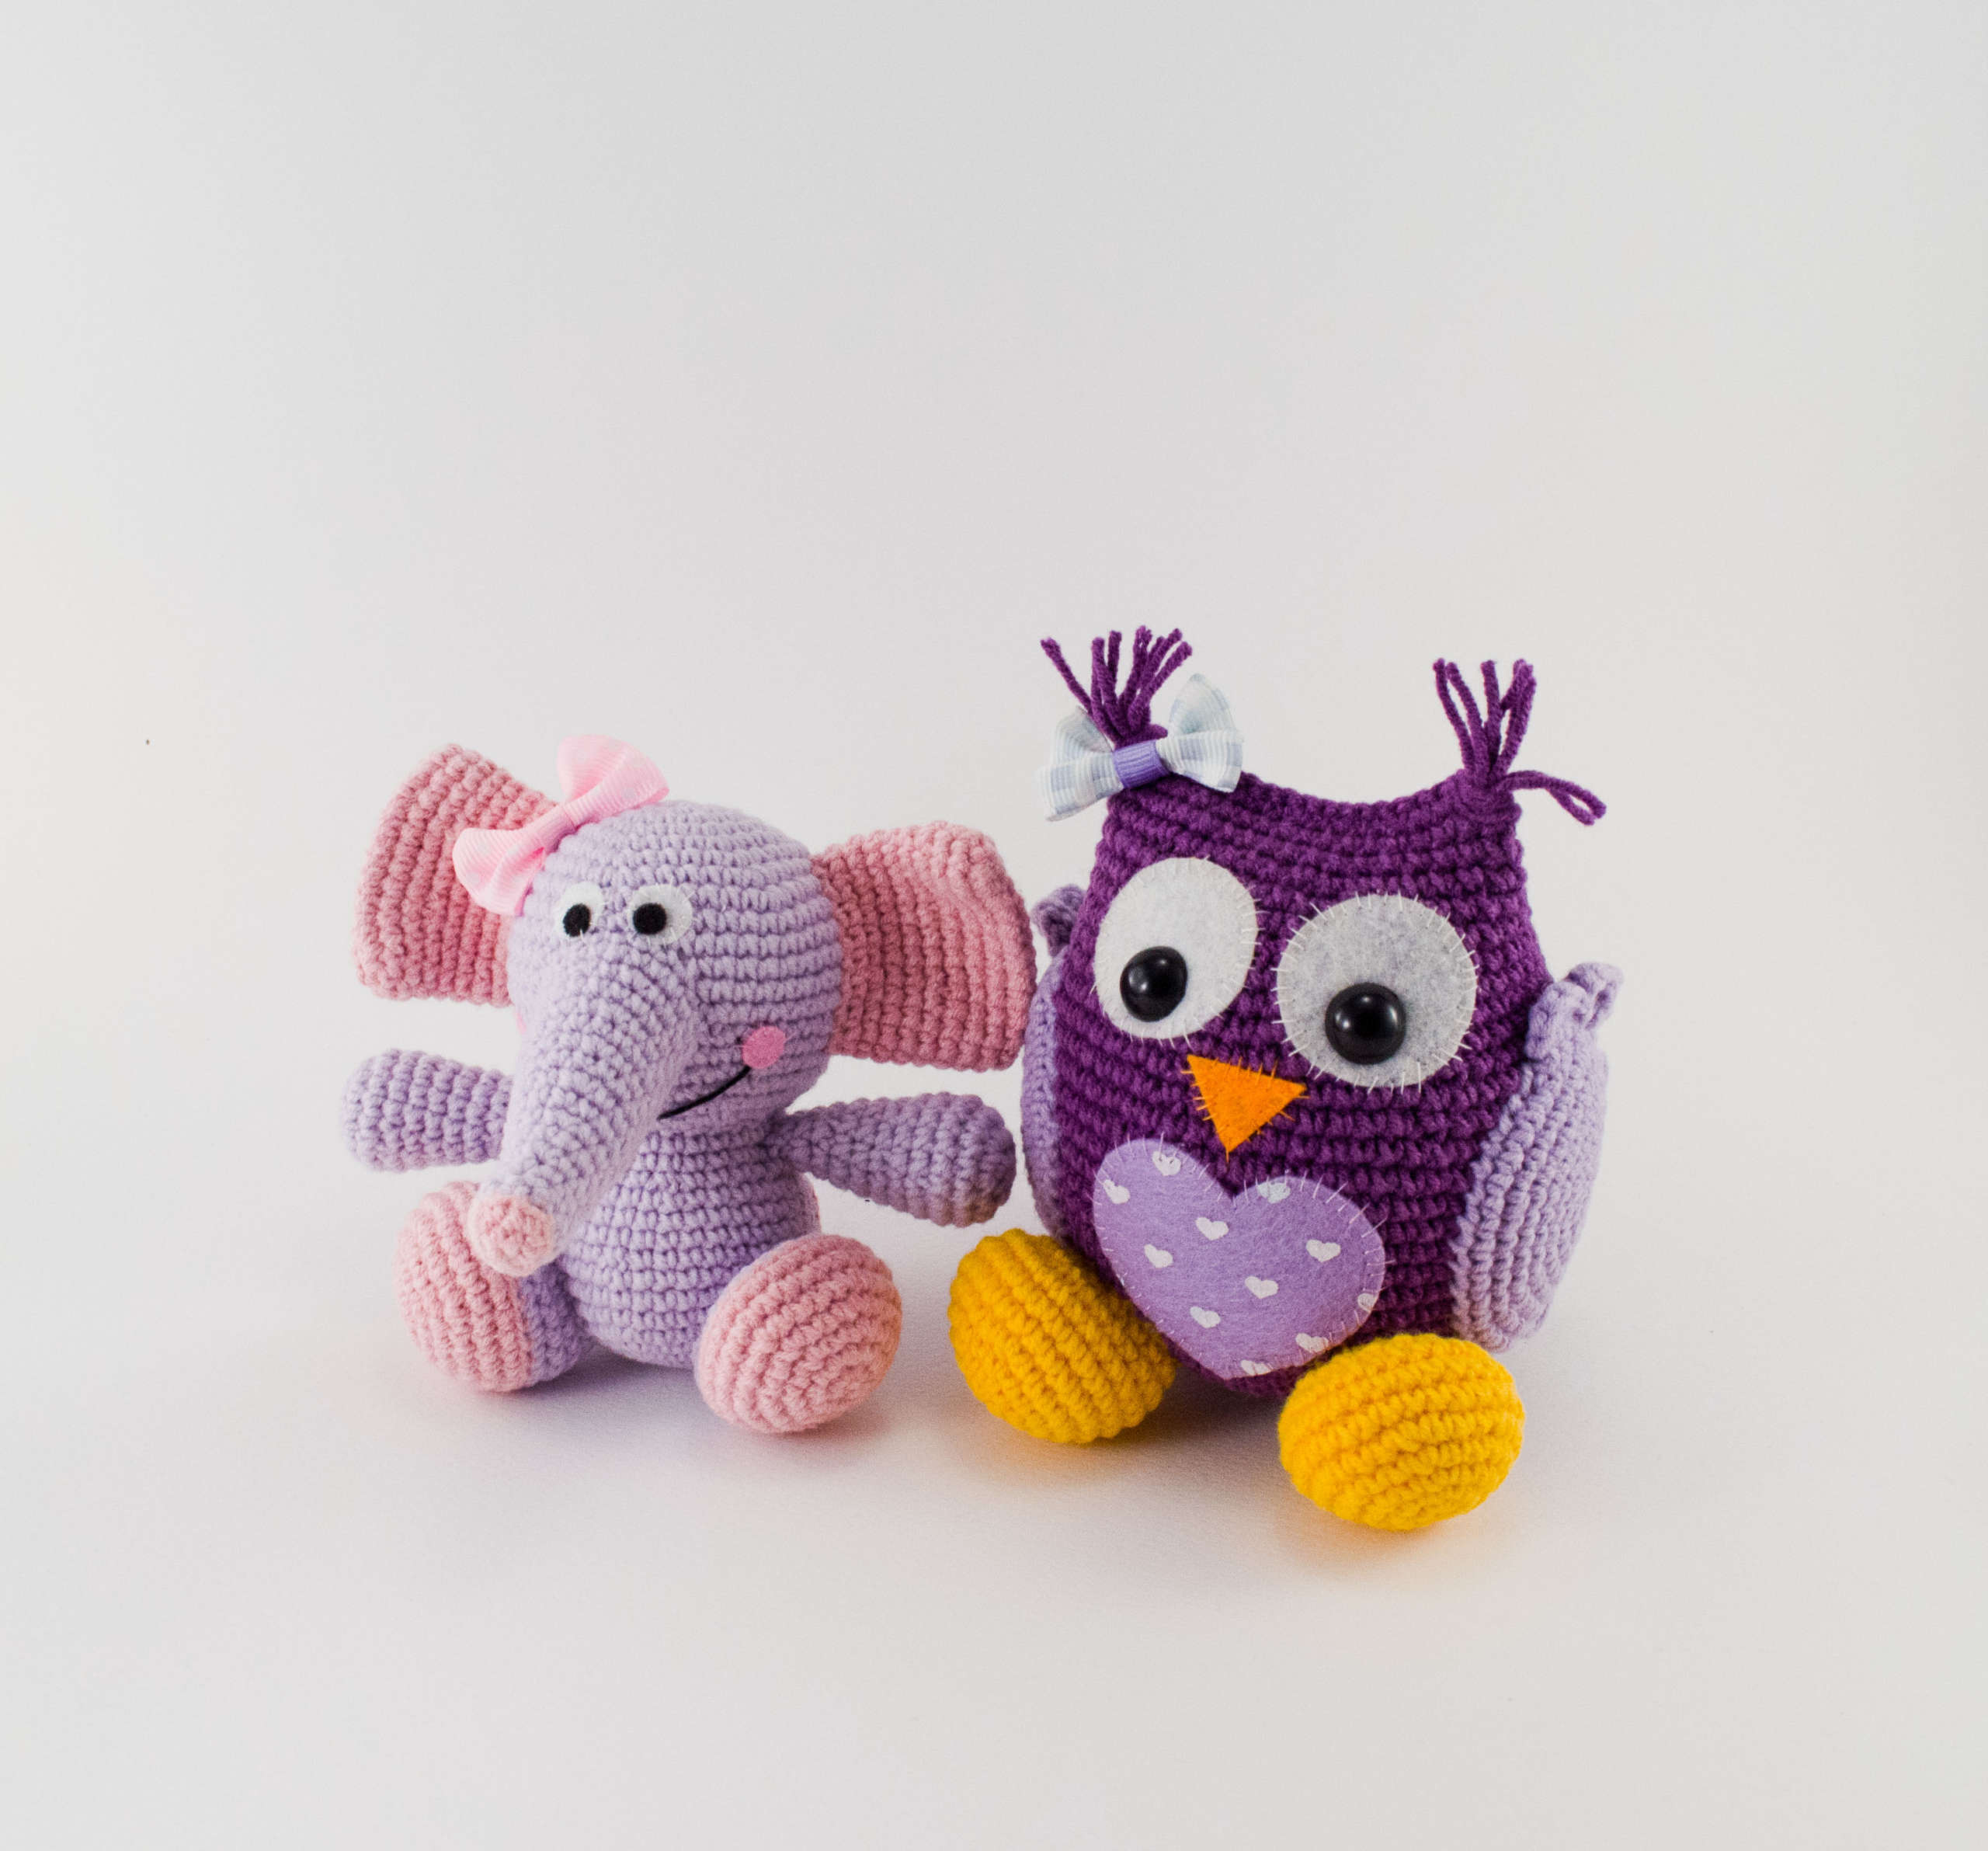 Hoooked Crochet Your Own Elephant Kit, Blue at John Lewis & Partners | 1787x1920